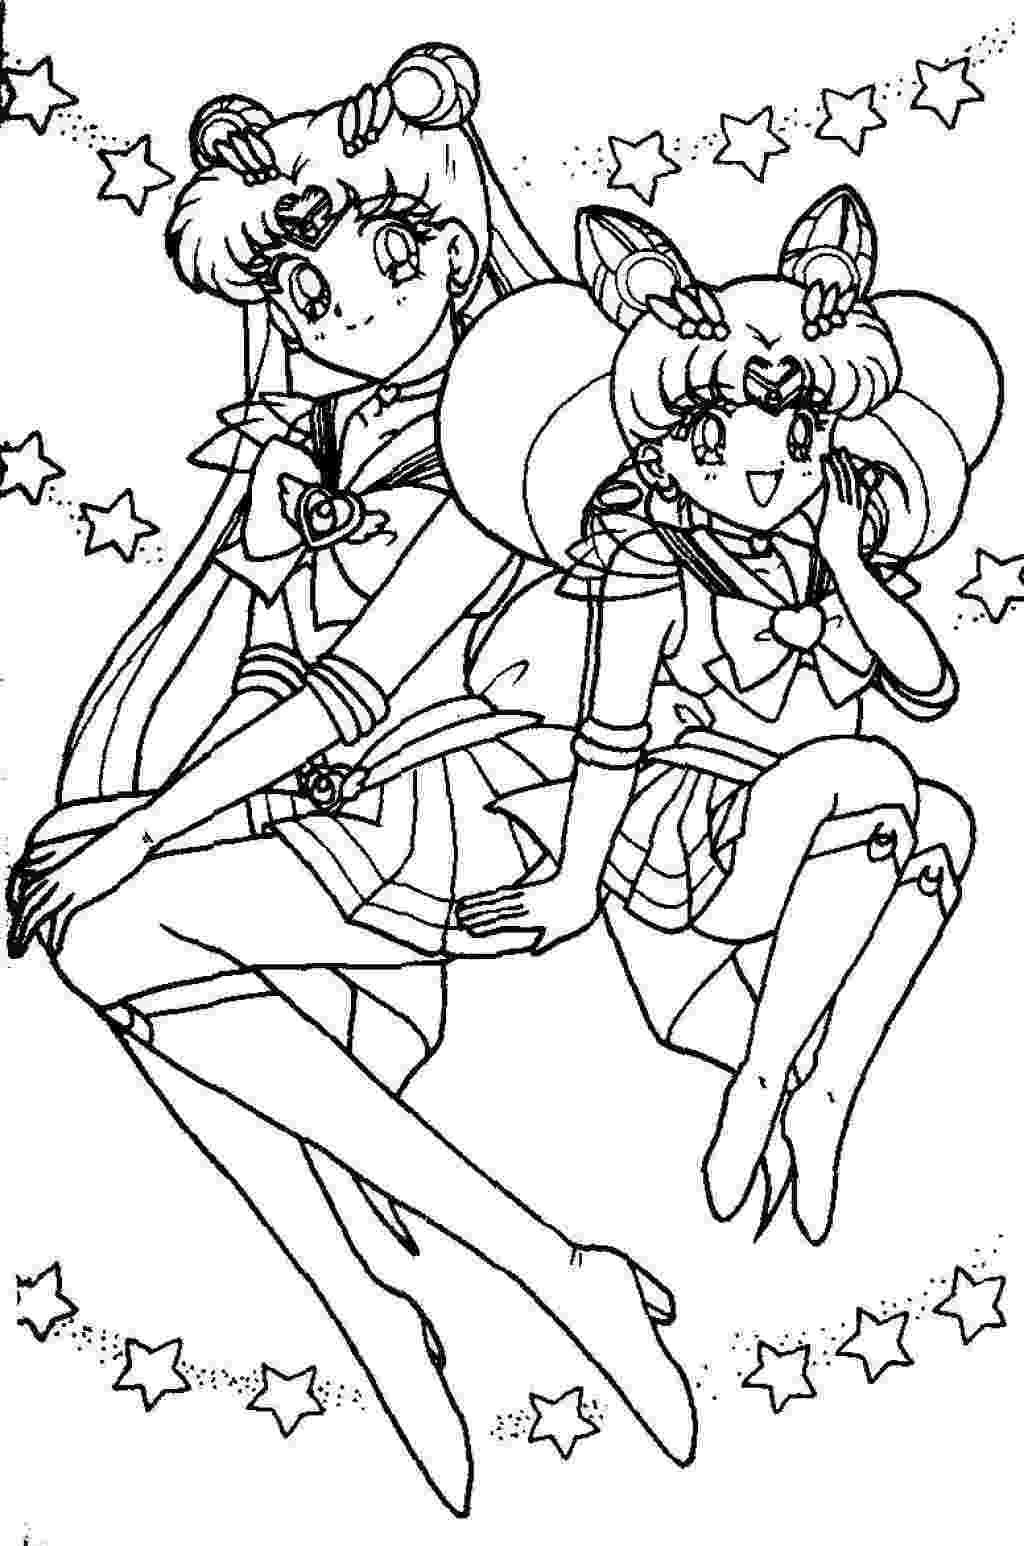 sailor moon coloring pages free printable sailor moon coloring pages for kids coloring pages sailor moon